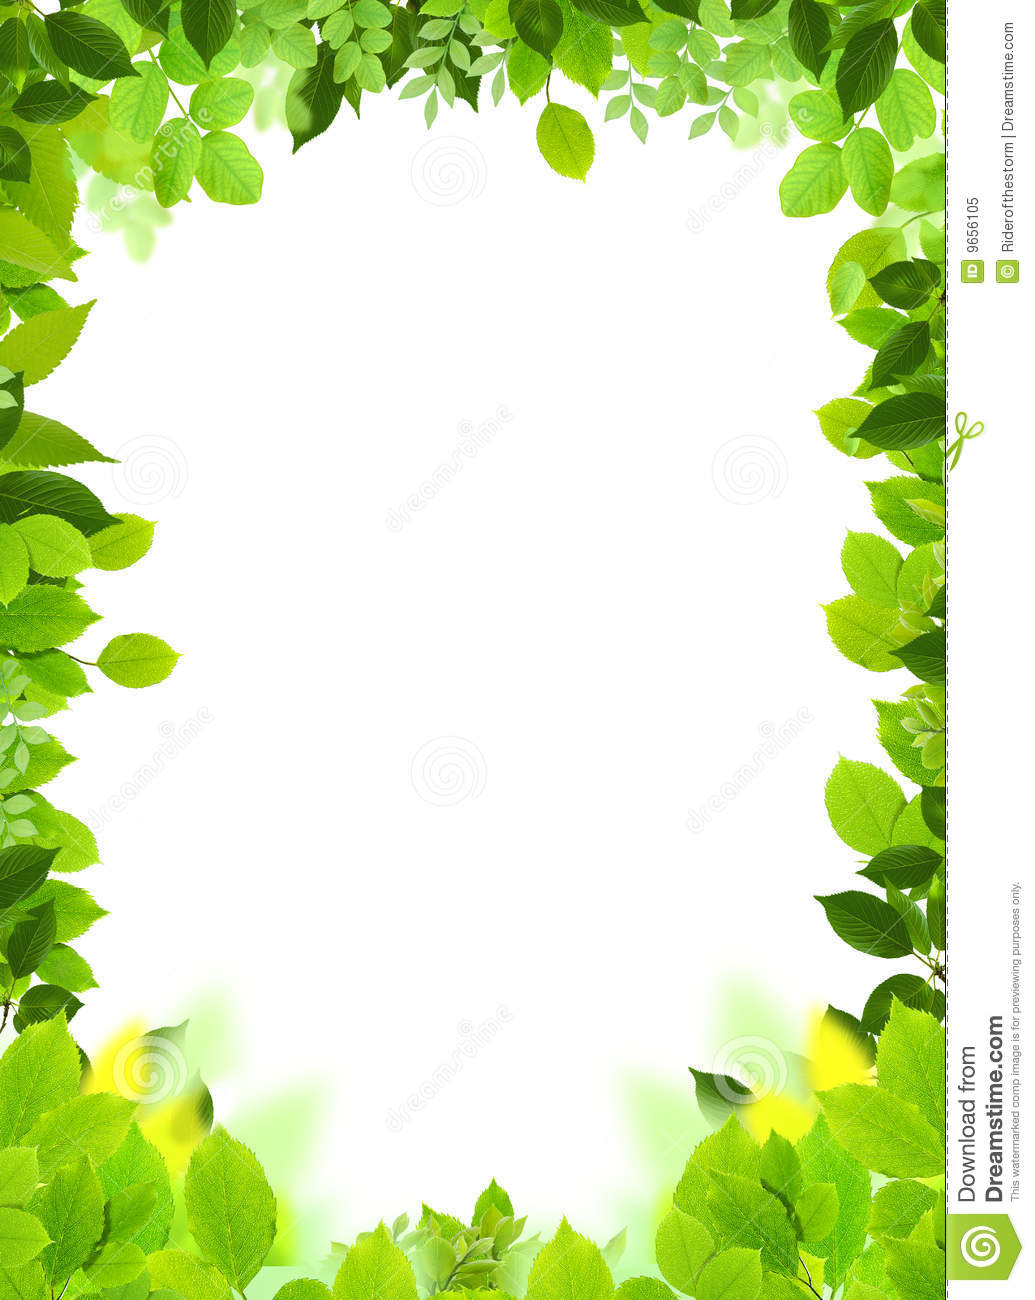 natural frame stock illustrations 214 718 natural frame stock illustrations vectors clipart dreamstime dreamstime com